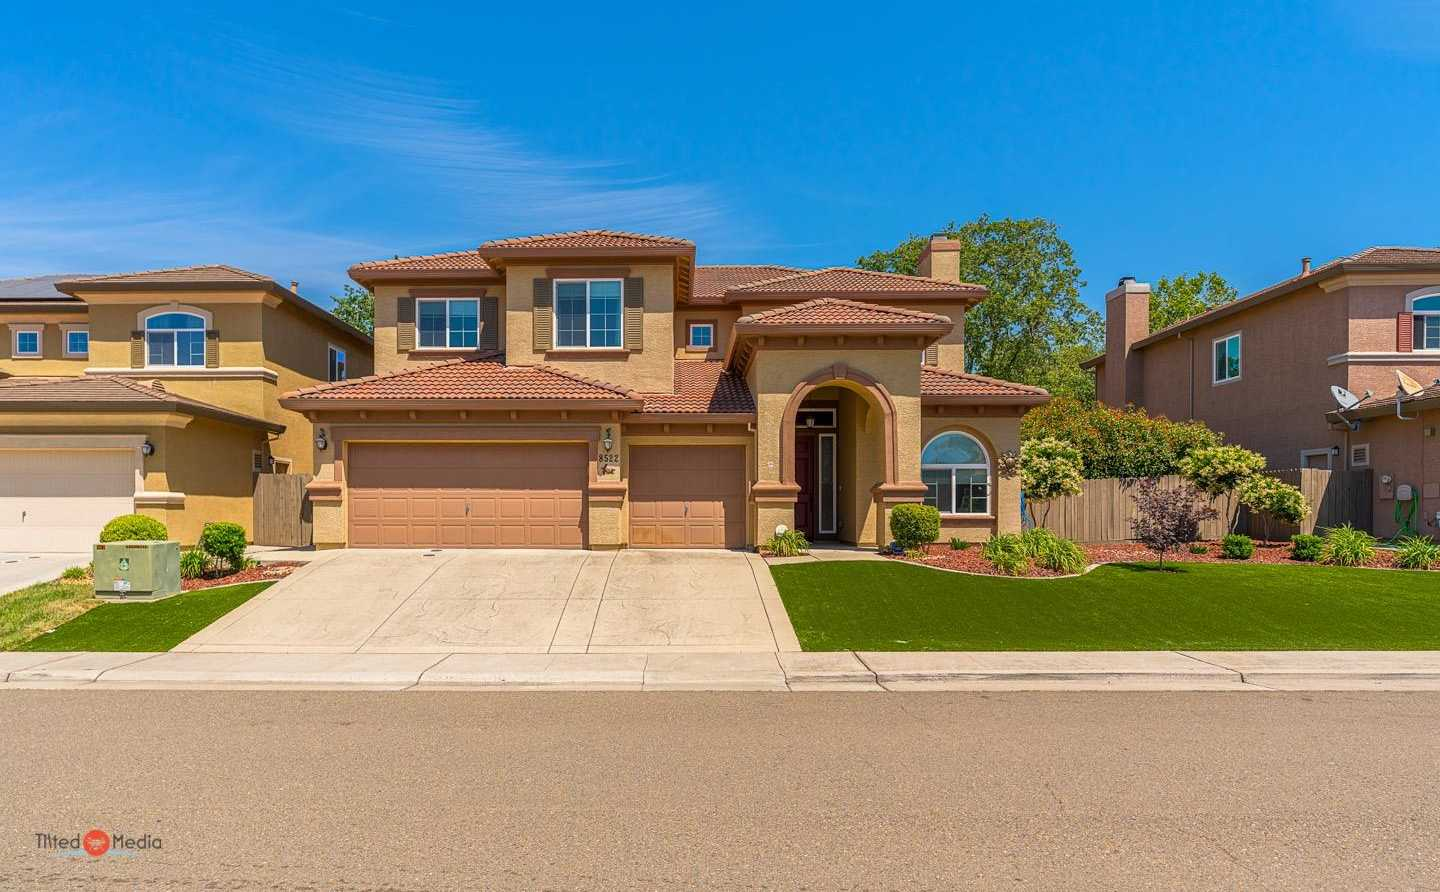 $630,000 - 5Br/4Ba -  for Sale in Orangevale